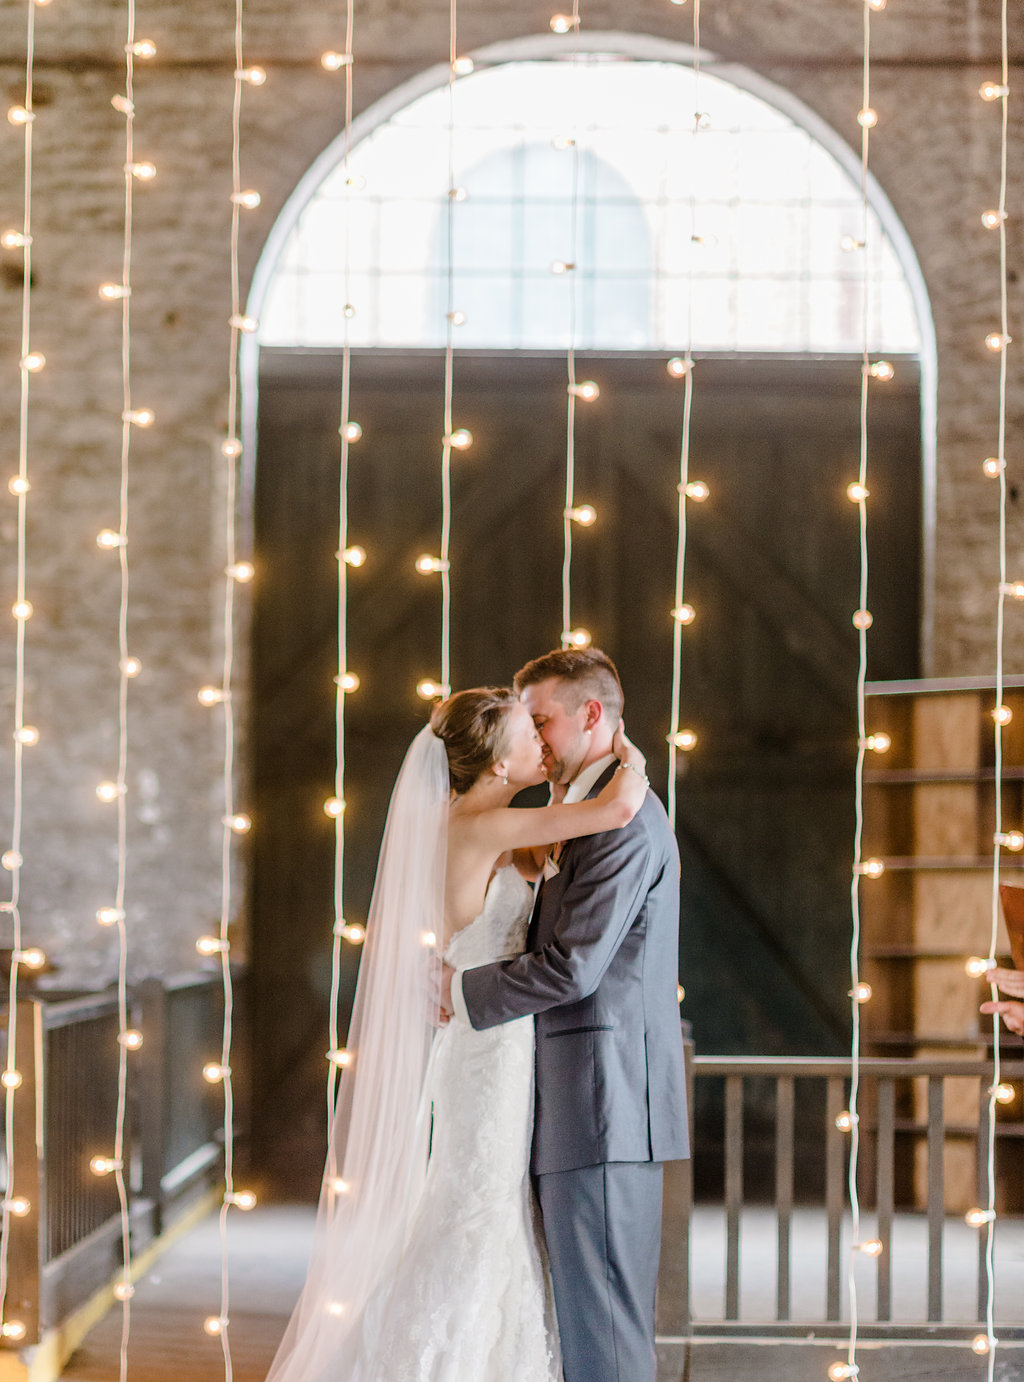 rach-lea-photography-rach-loves-troy-roundhouse-railroad-museum-wedding-ivory-and-beau-savannah-wedding-planner-savannah-weddings-savannah-florist-ivory-and-beau-bridal-boutique-succulent-blush-wedding-36.jpg